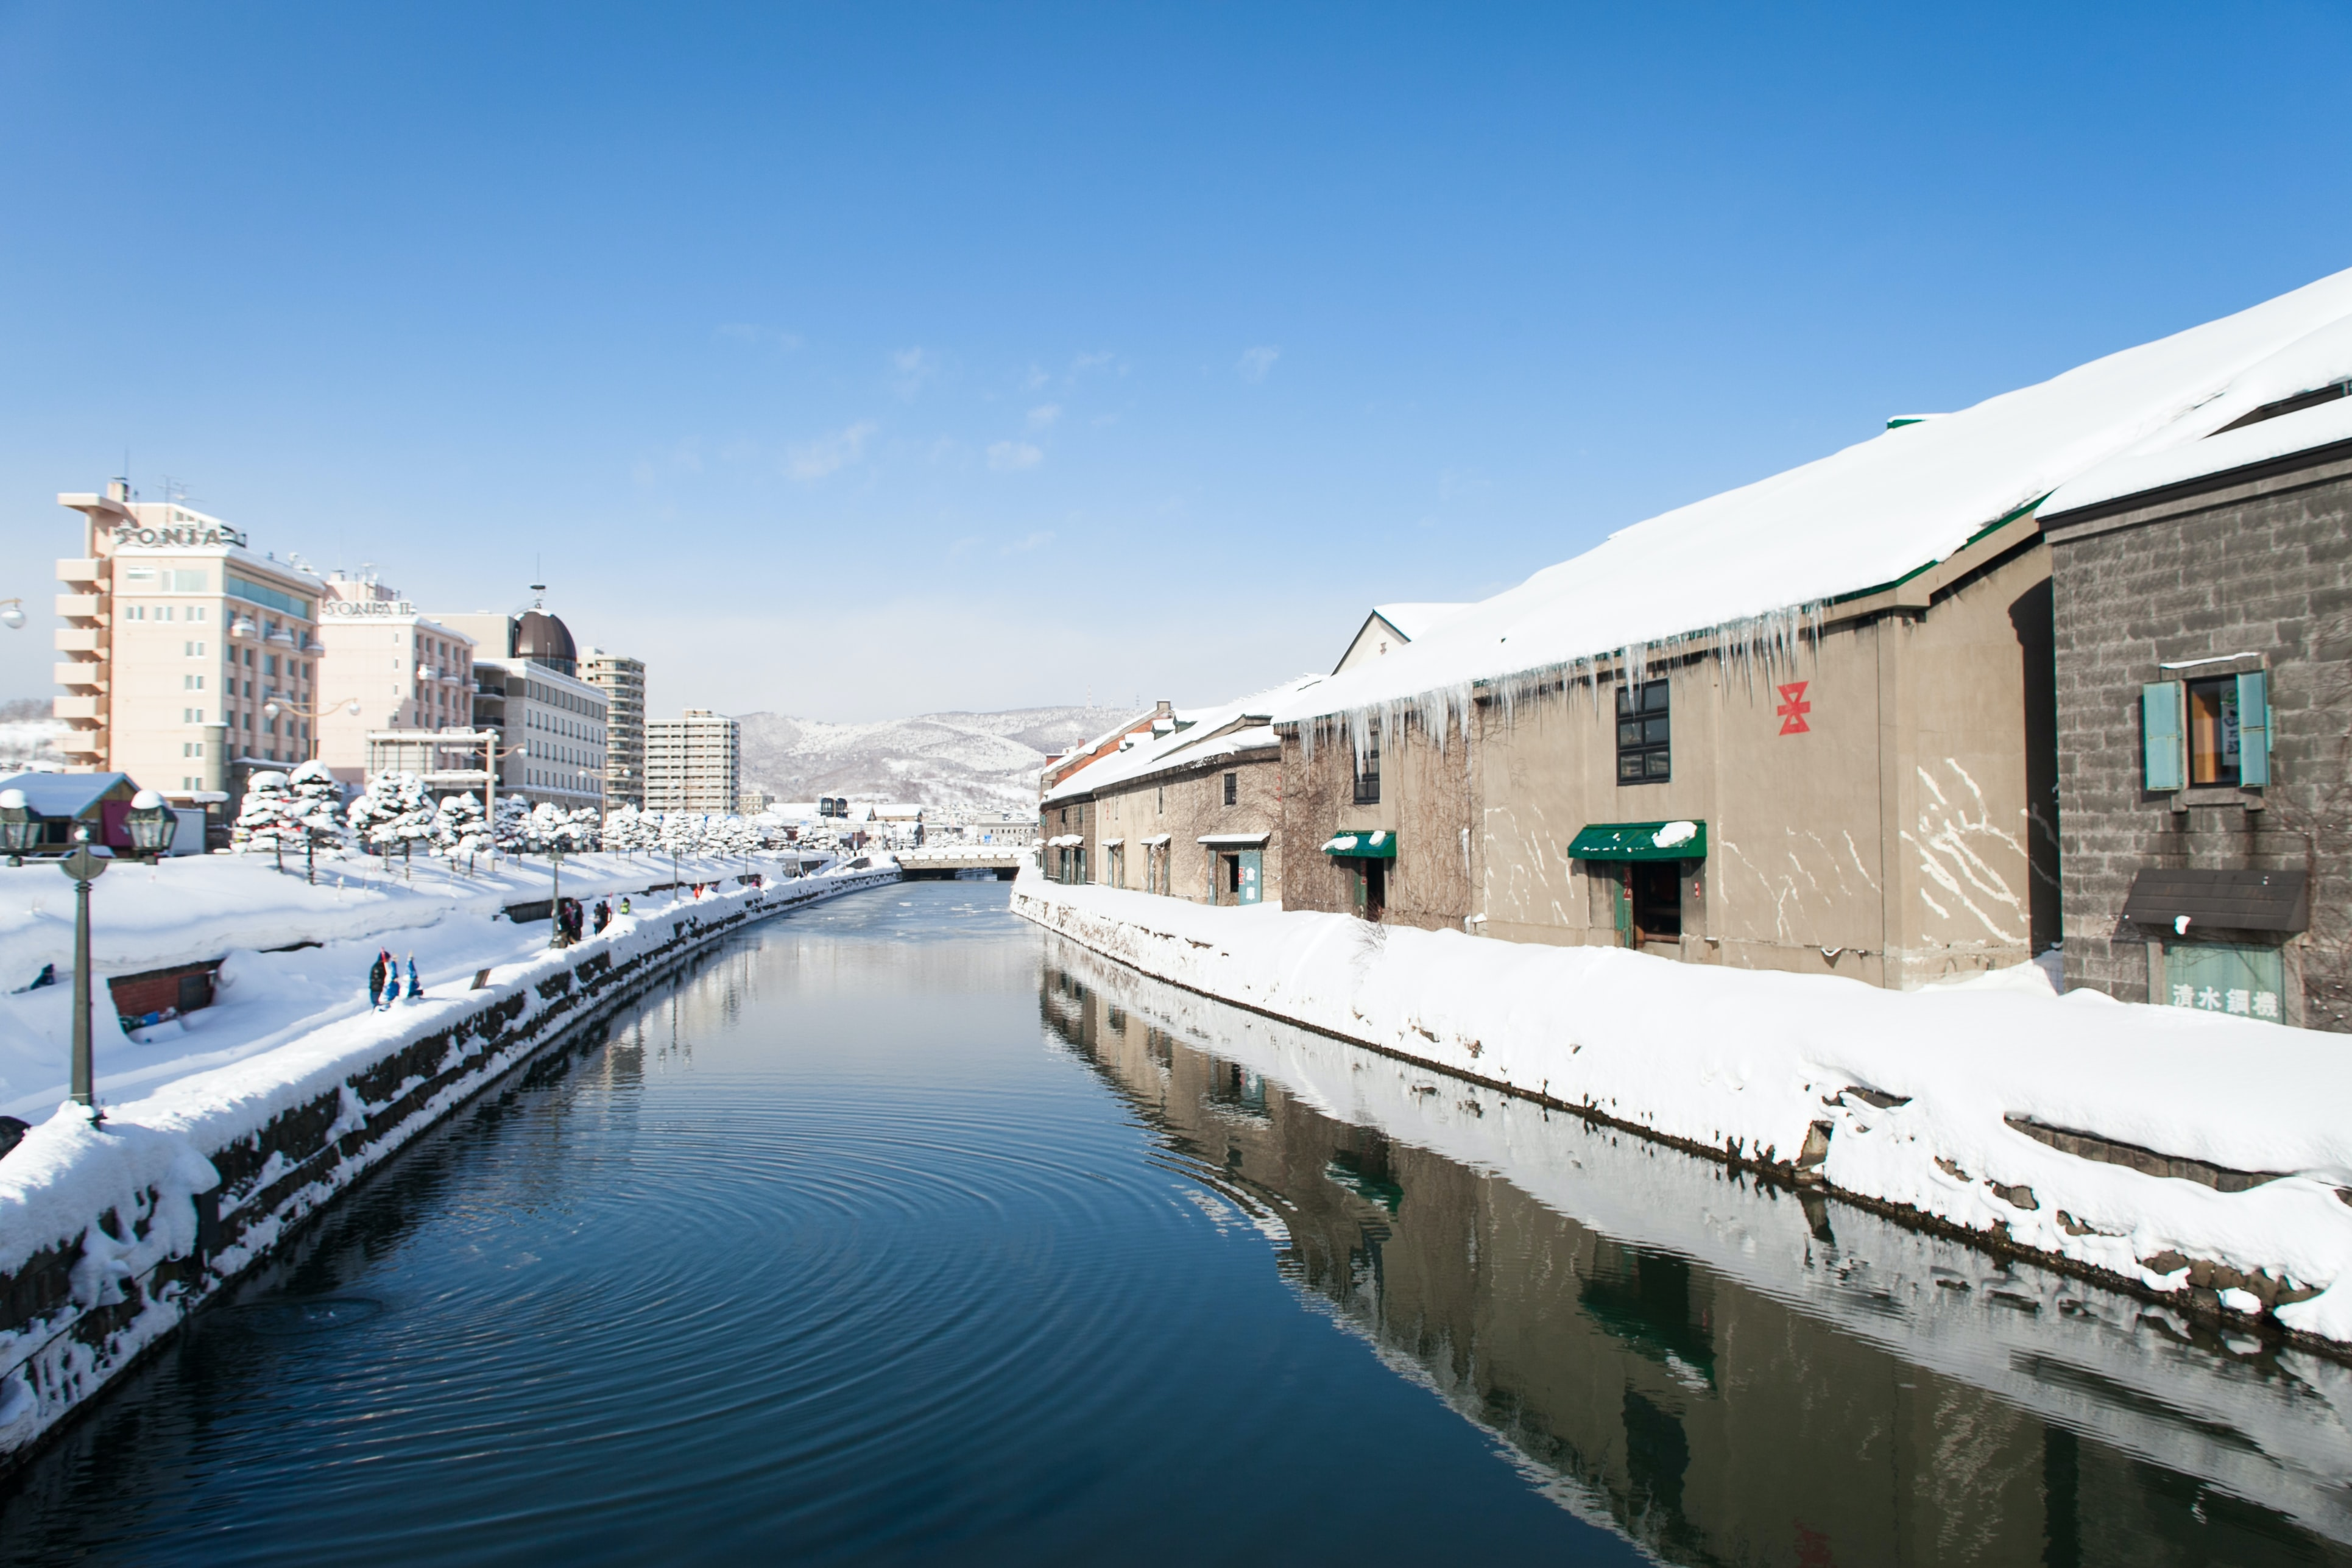 The canal during winter flanked by snow covered buildings